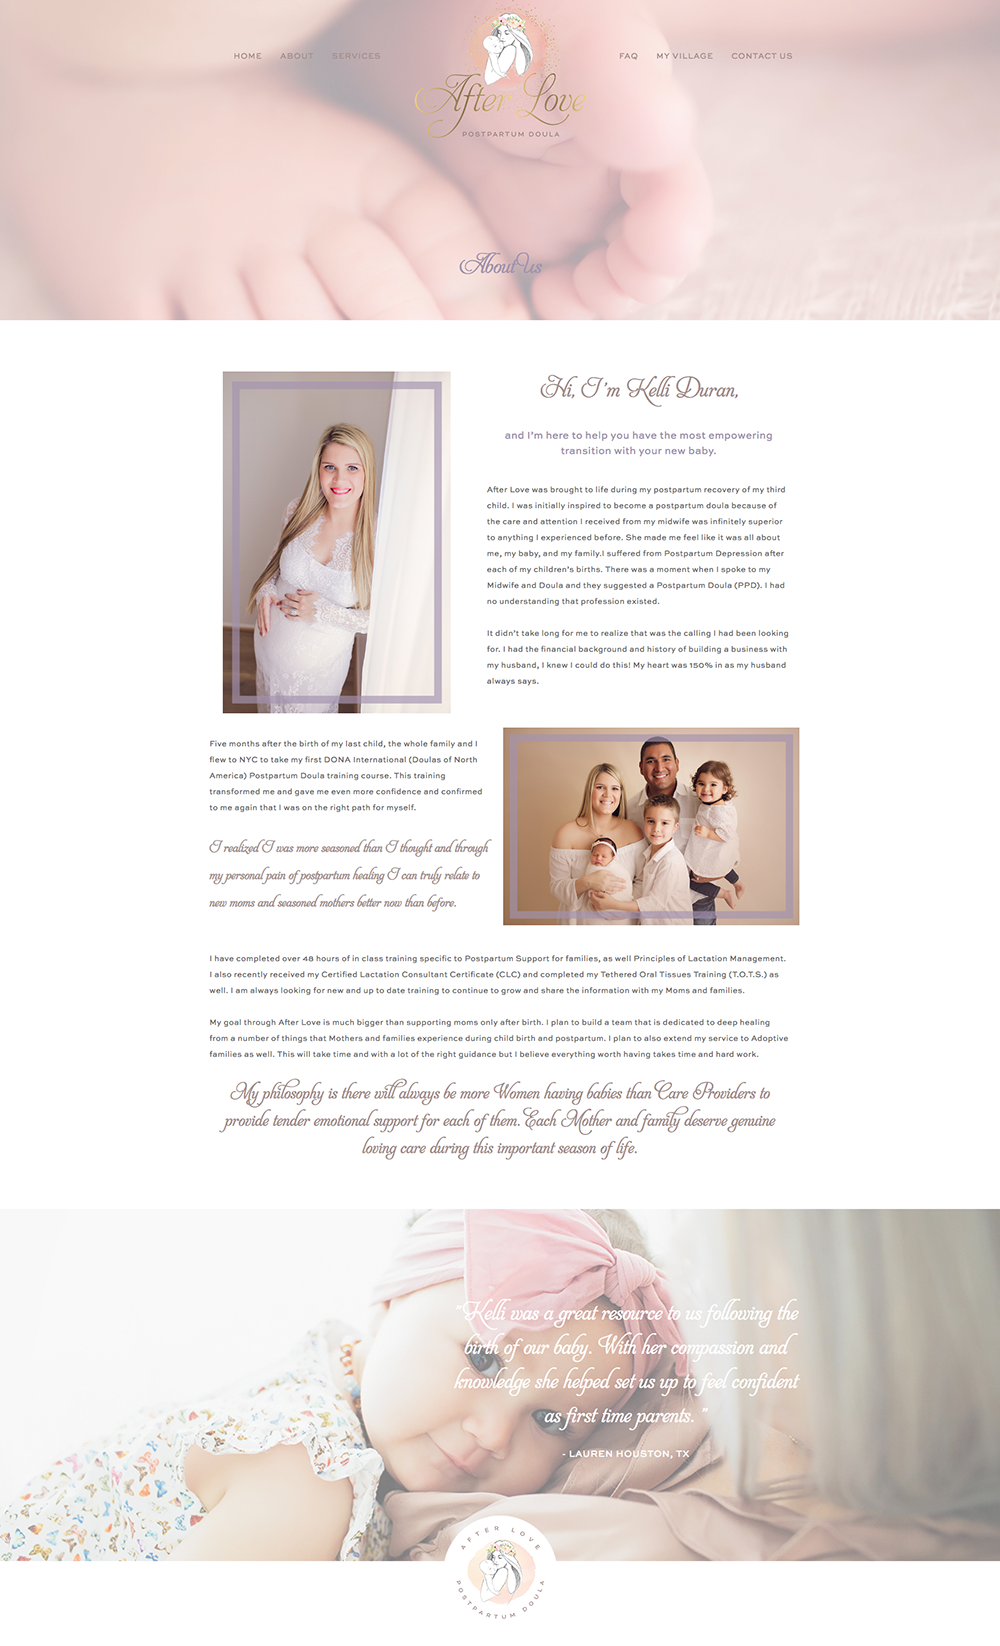 About page screenshot of afterlovedoula.com